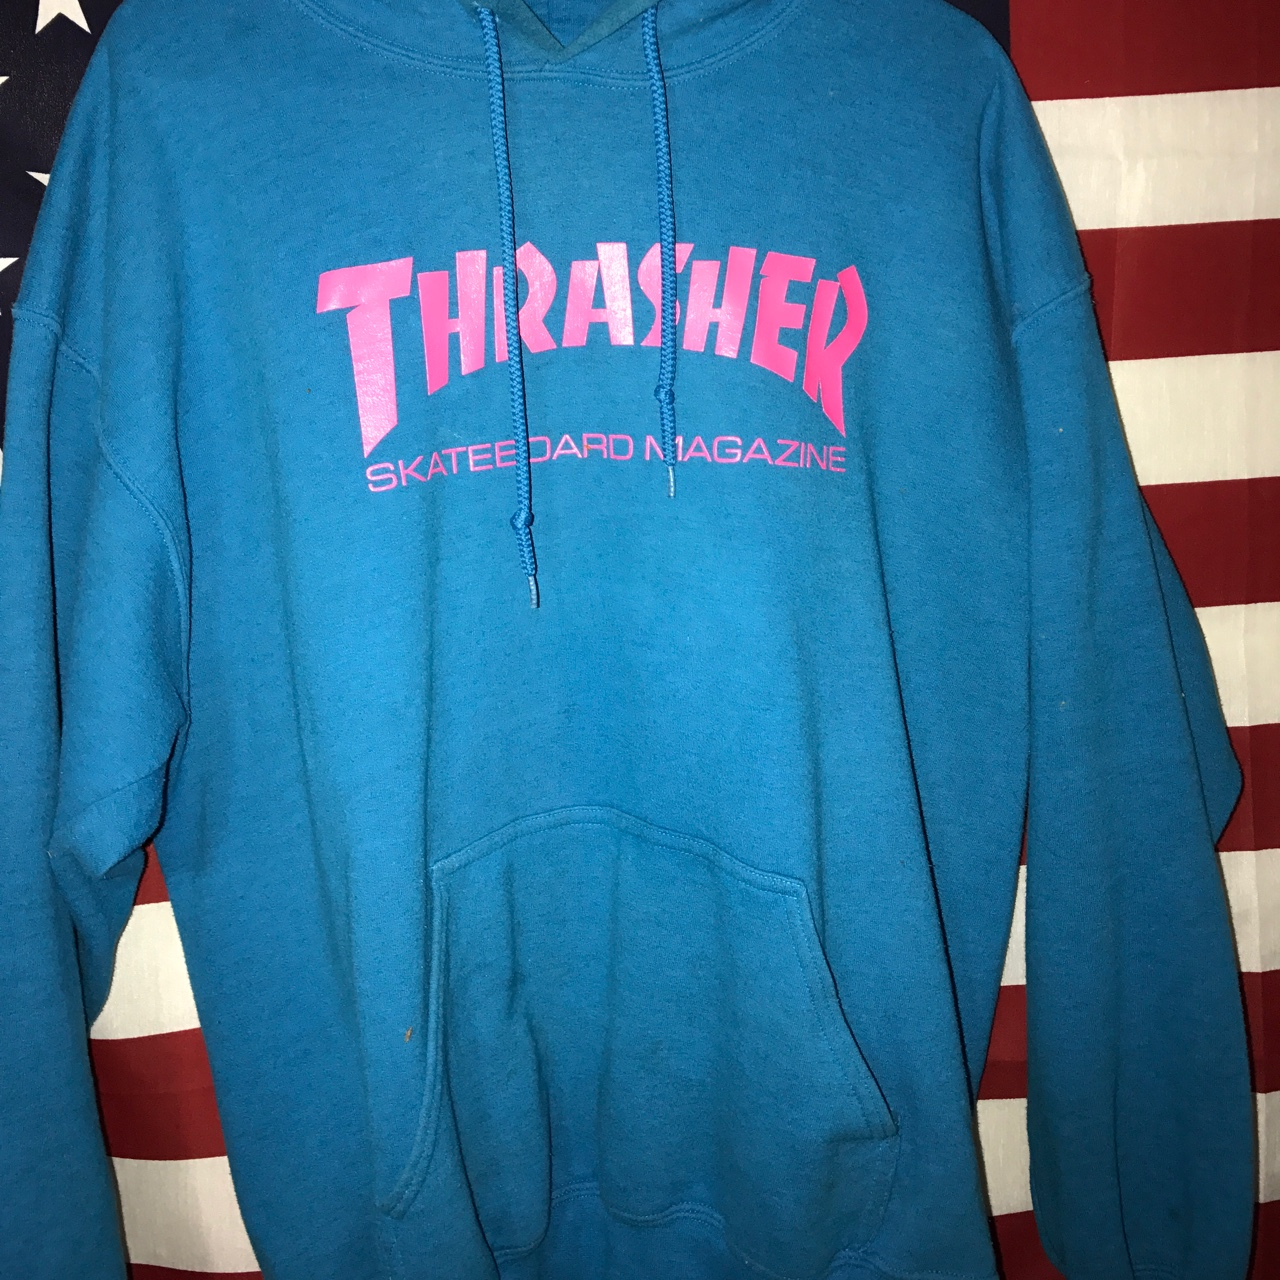 bbddfb2ad852 miggyboc. Independence, United States. Authentic RARE blue and pink  thrasher hoodie. Slightly worn.